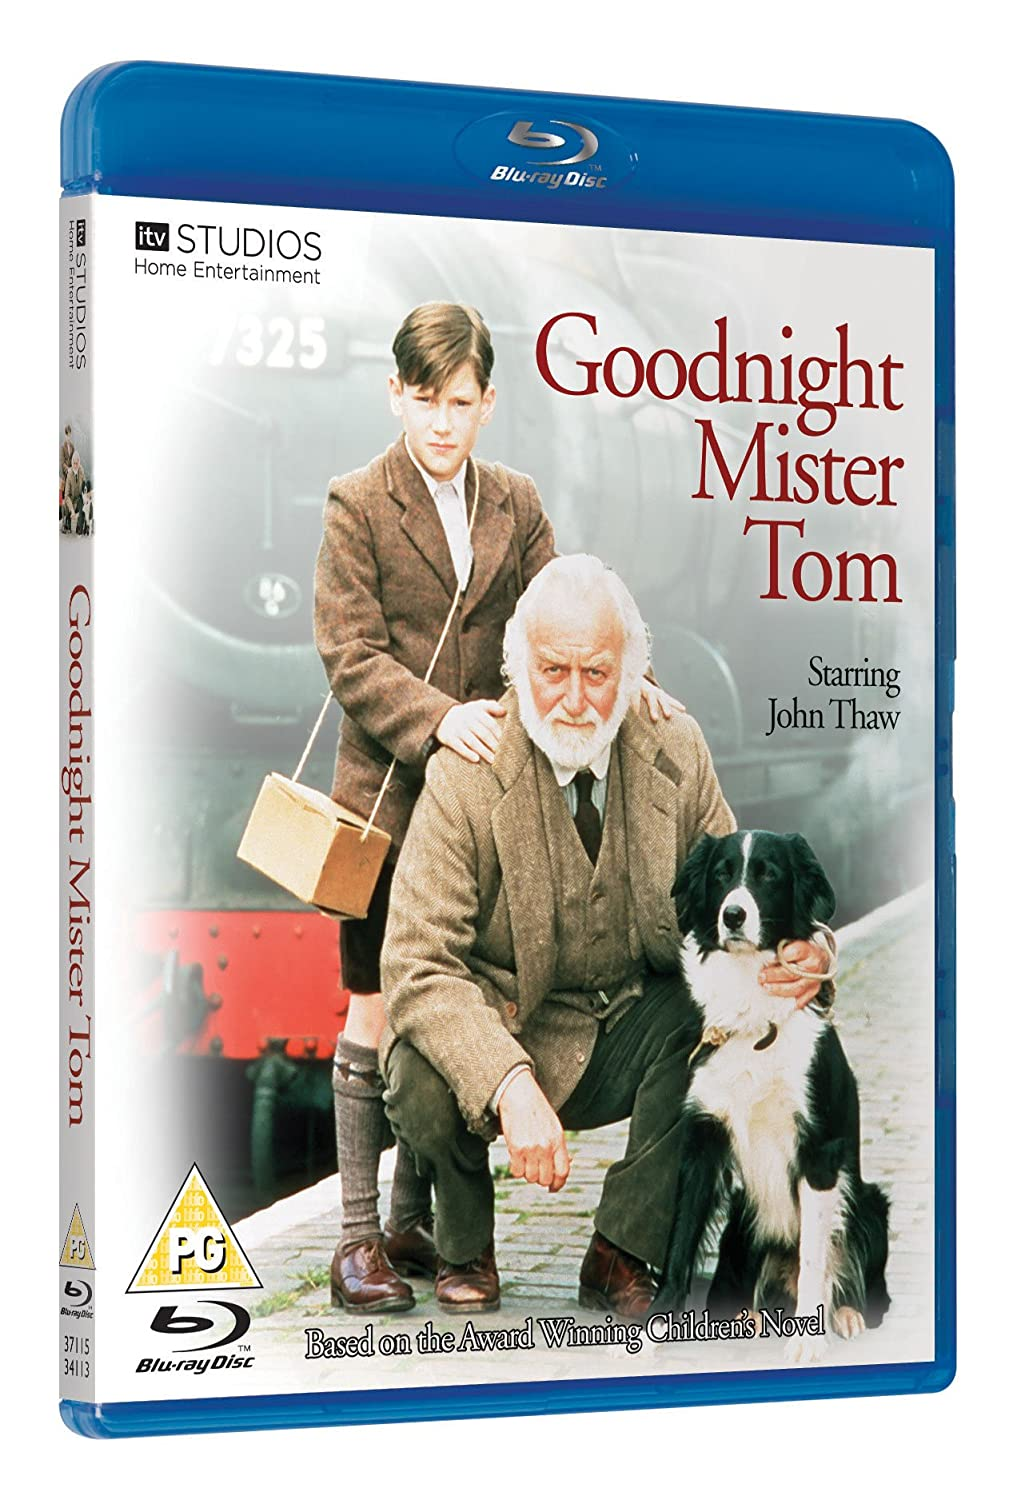 the search chapter 16 goodnight mr tom I wanted to know who made goodnight mr tom, was it universal studios.